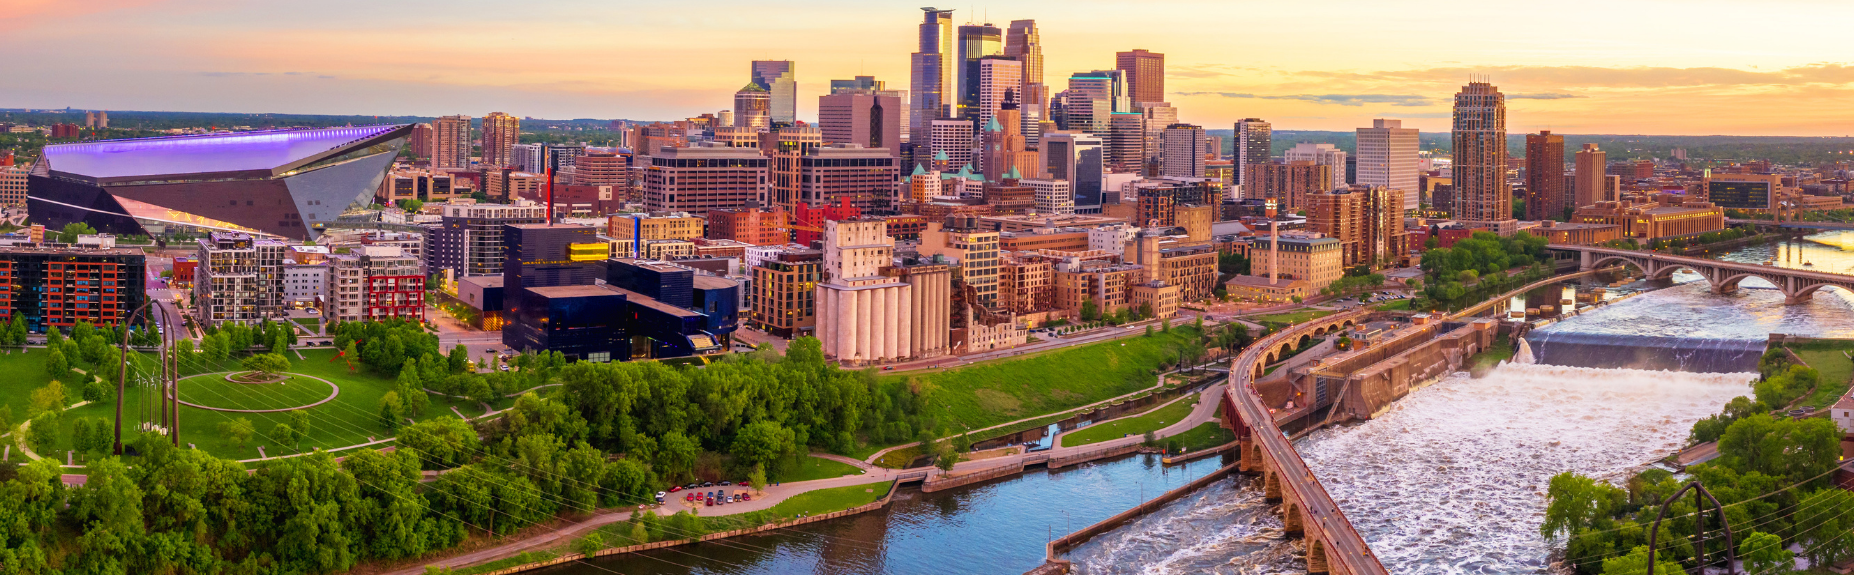 best river cruises to and from minneapolis